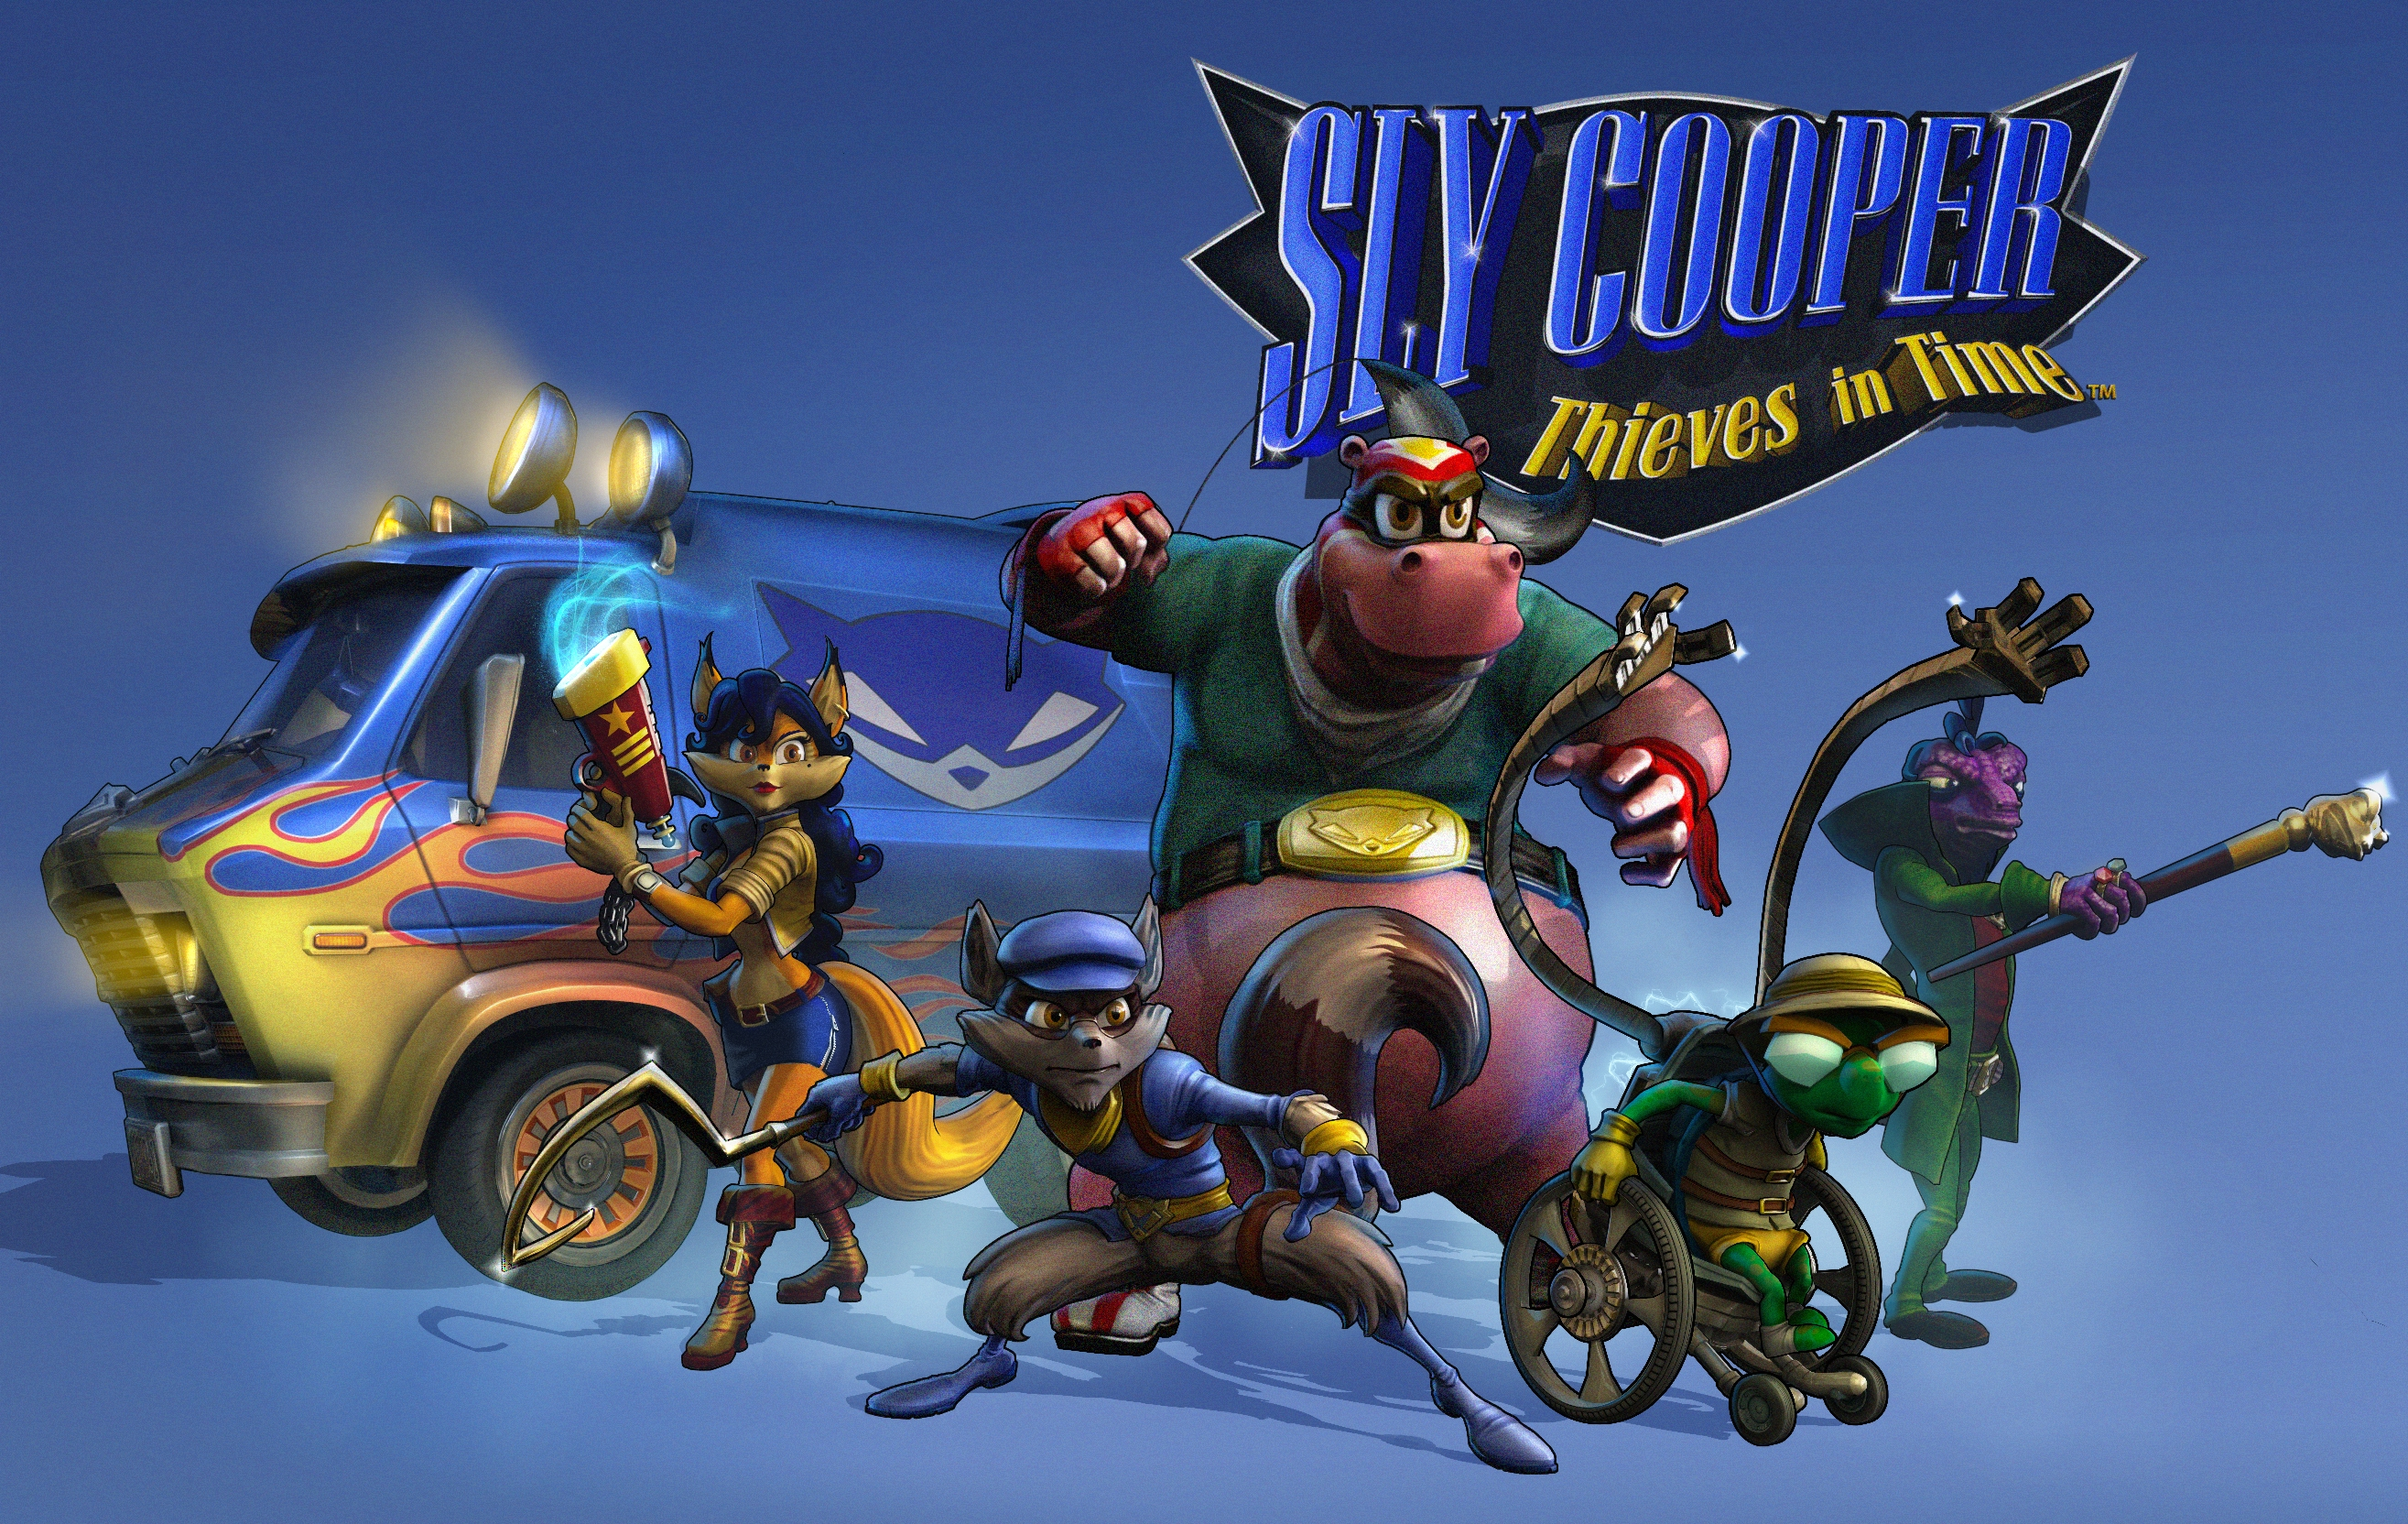 Sly Cooper Thieves in Time video game wallpapers Wallpaper 119 of 2630x1664